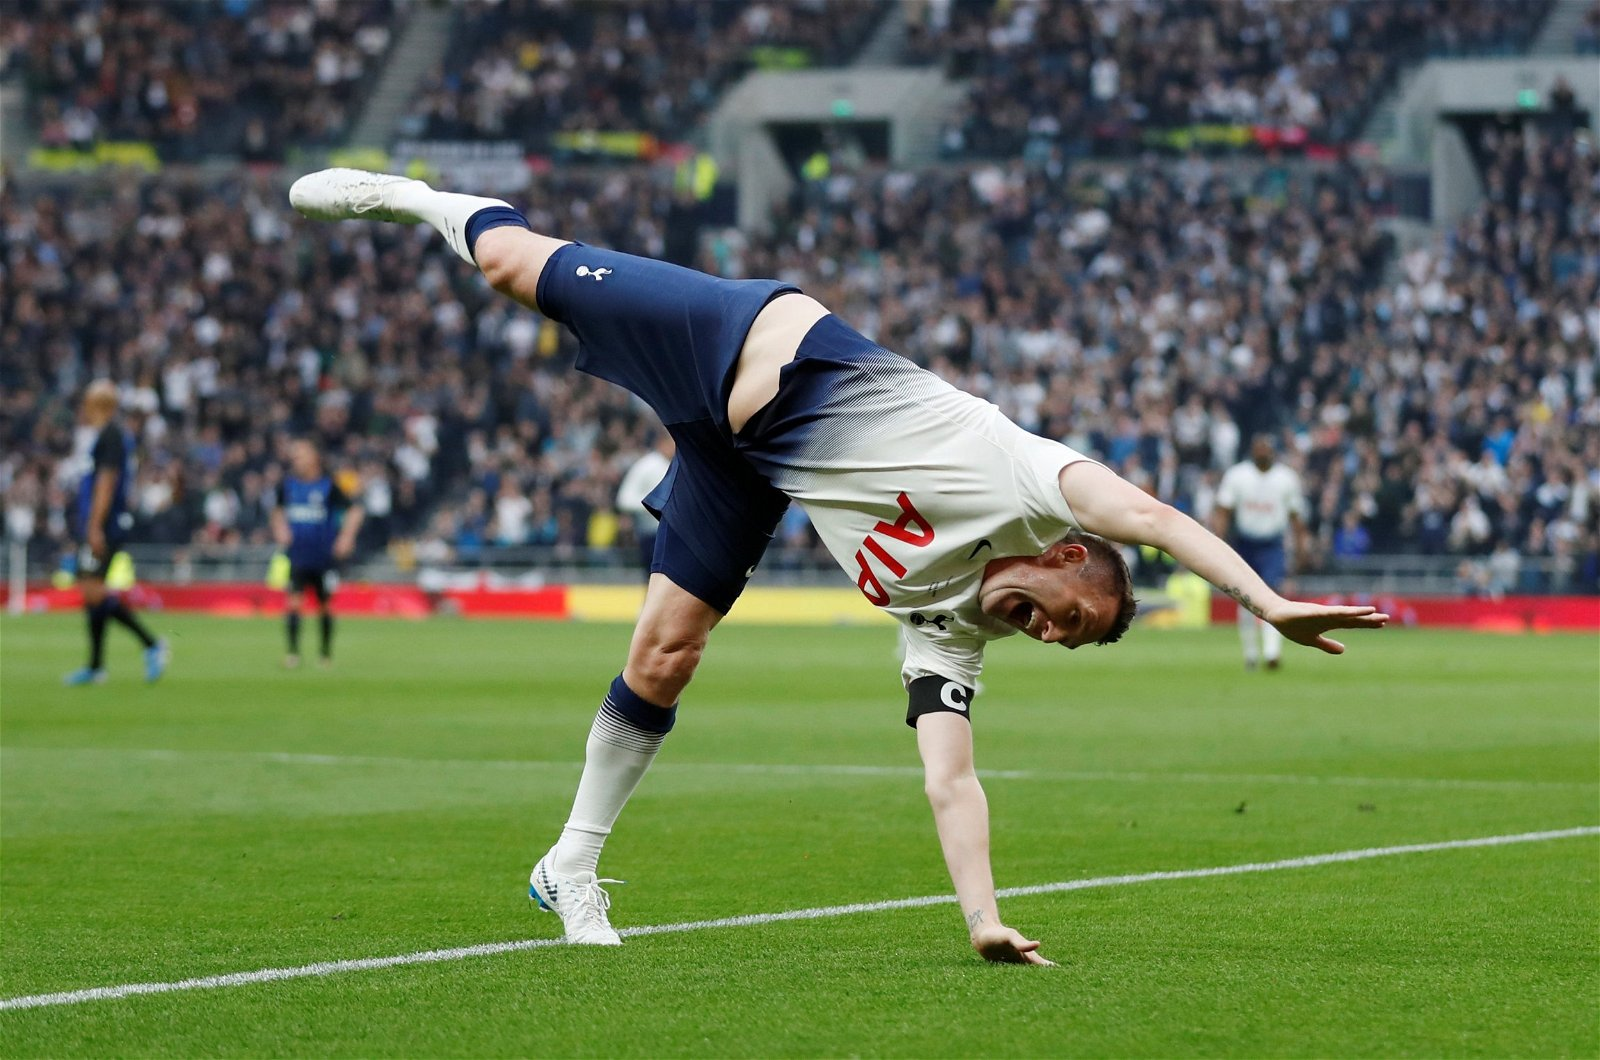 Robbie Keane does the cartwheel